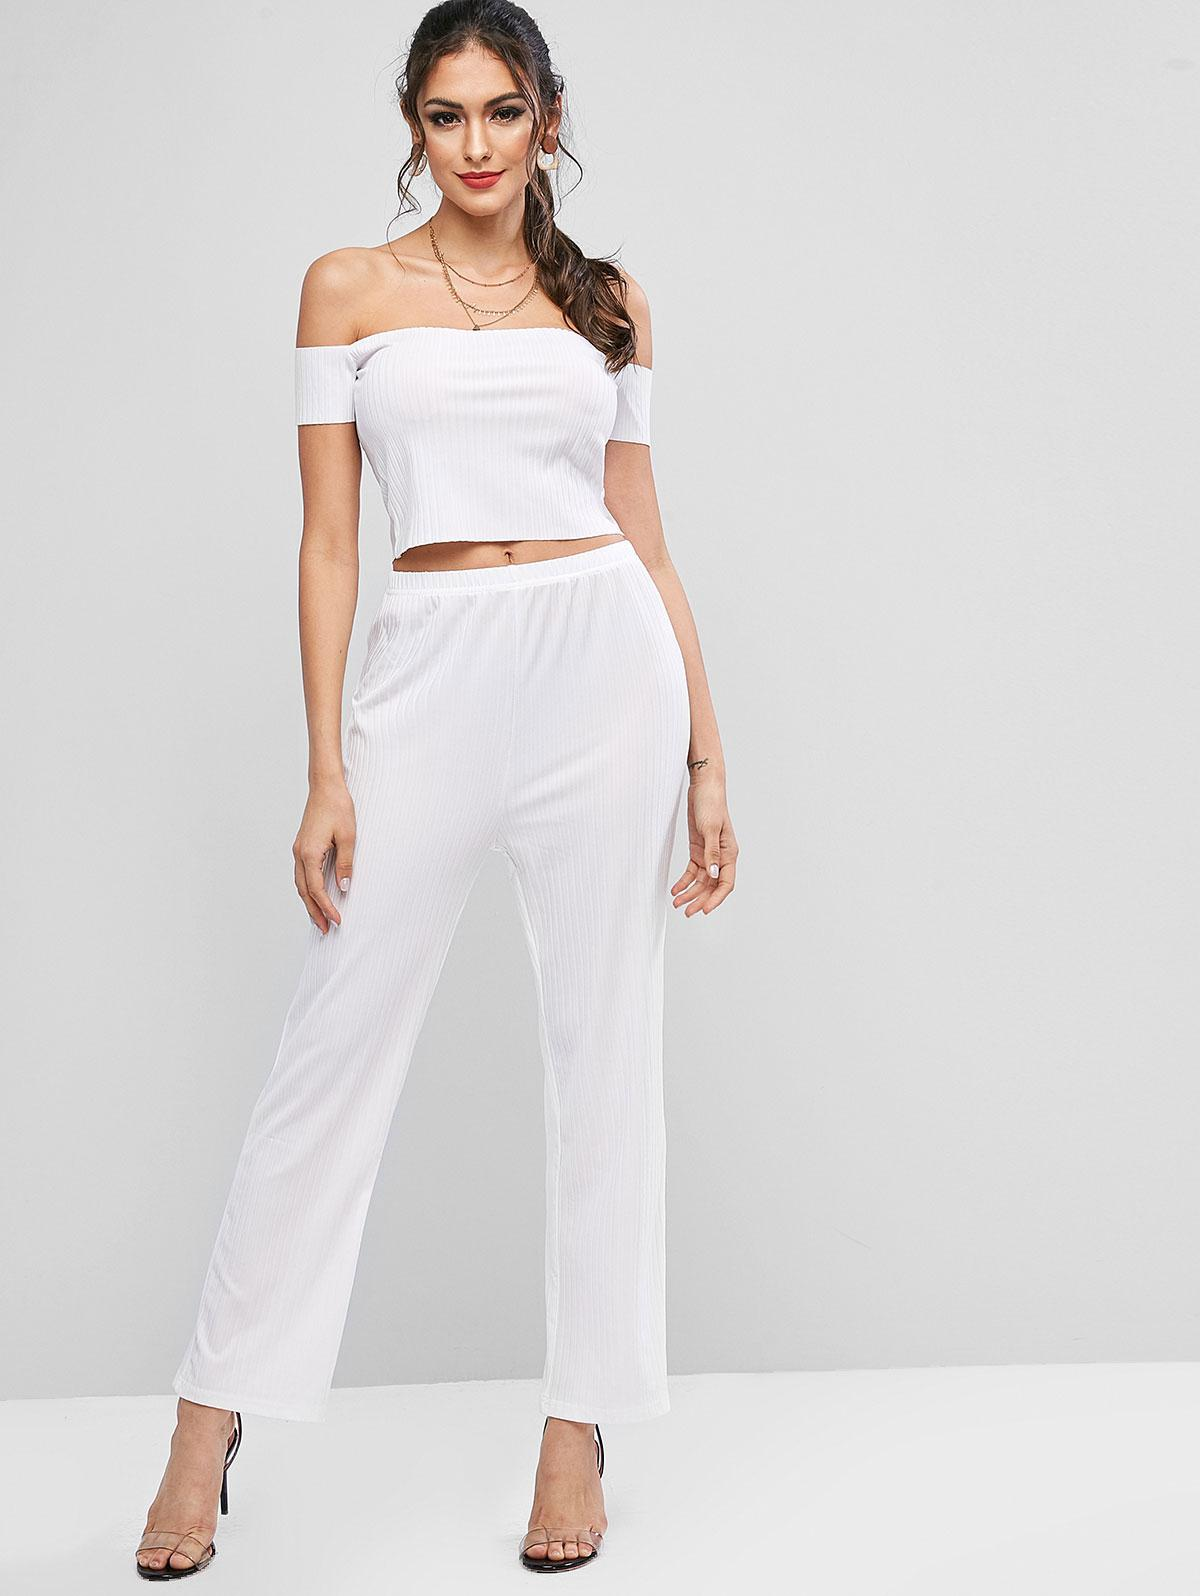 Front Button Cami Cropped Top And High Waist Pants, White